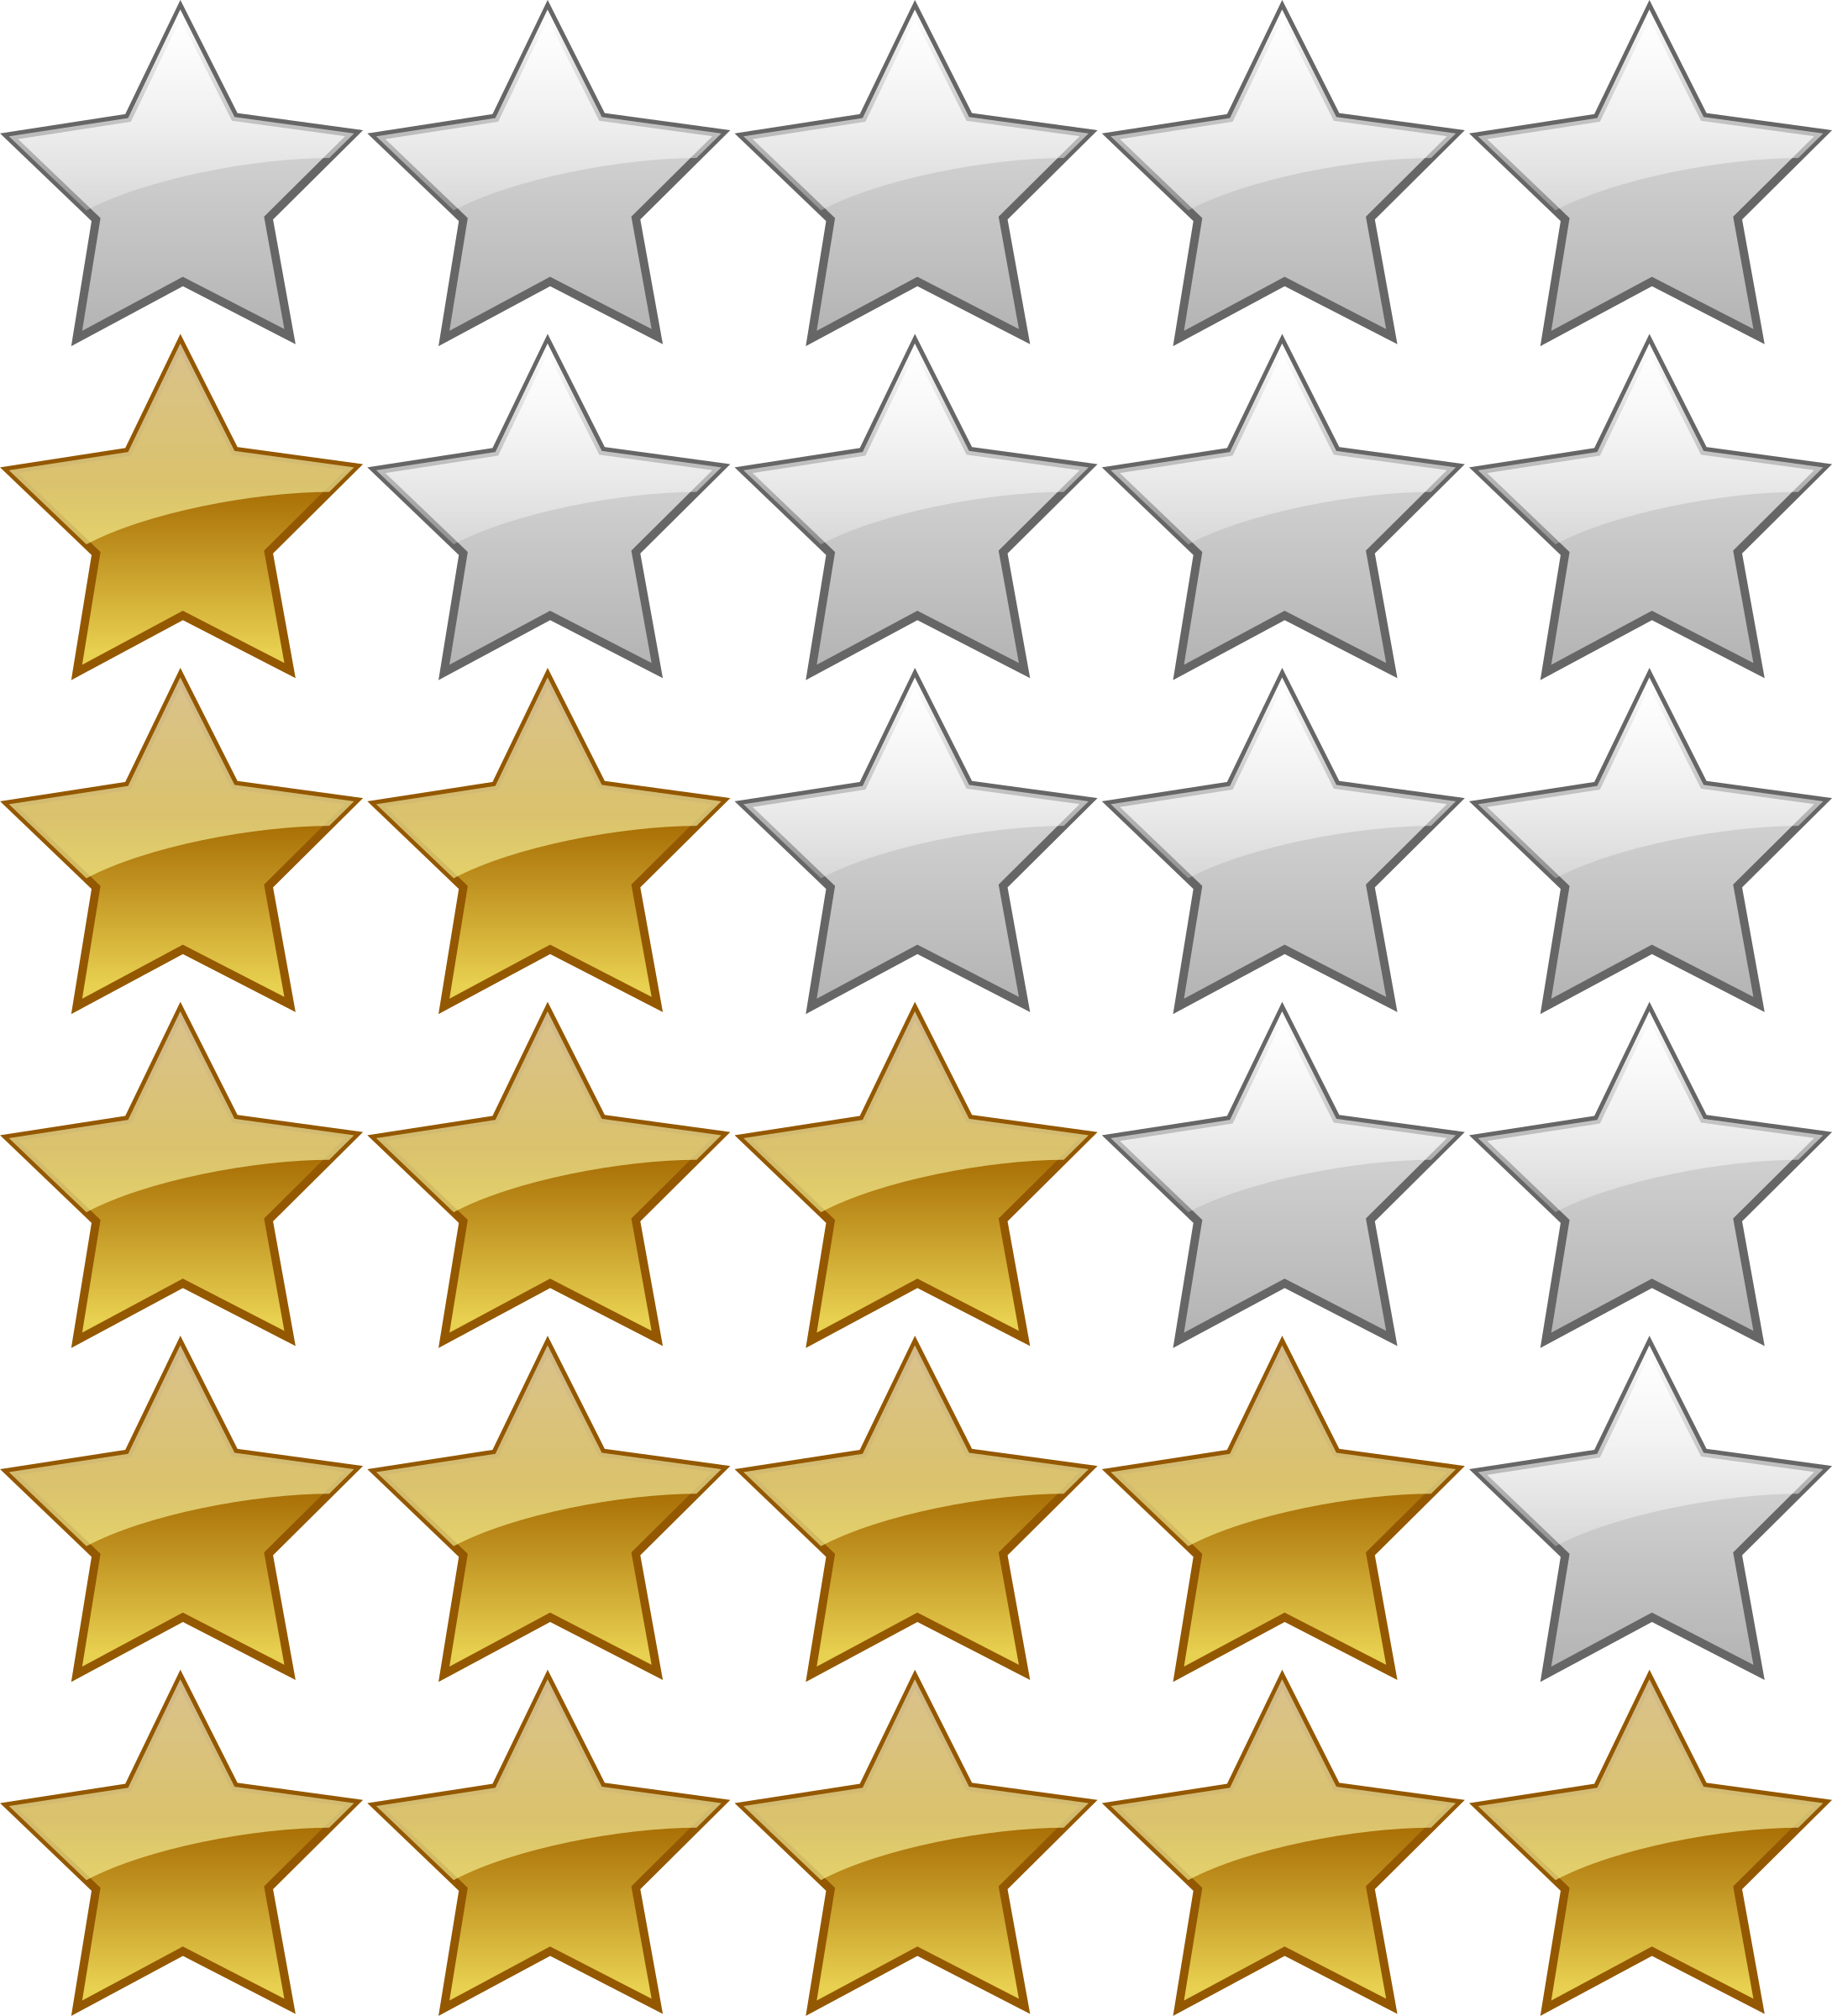 star rating icon. 5 stars png image graphic royalty free stock